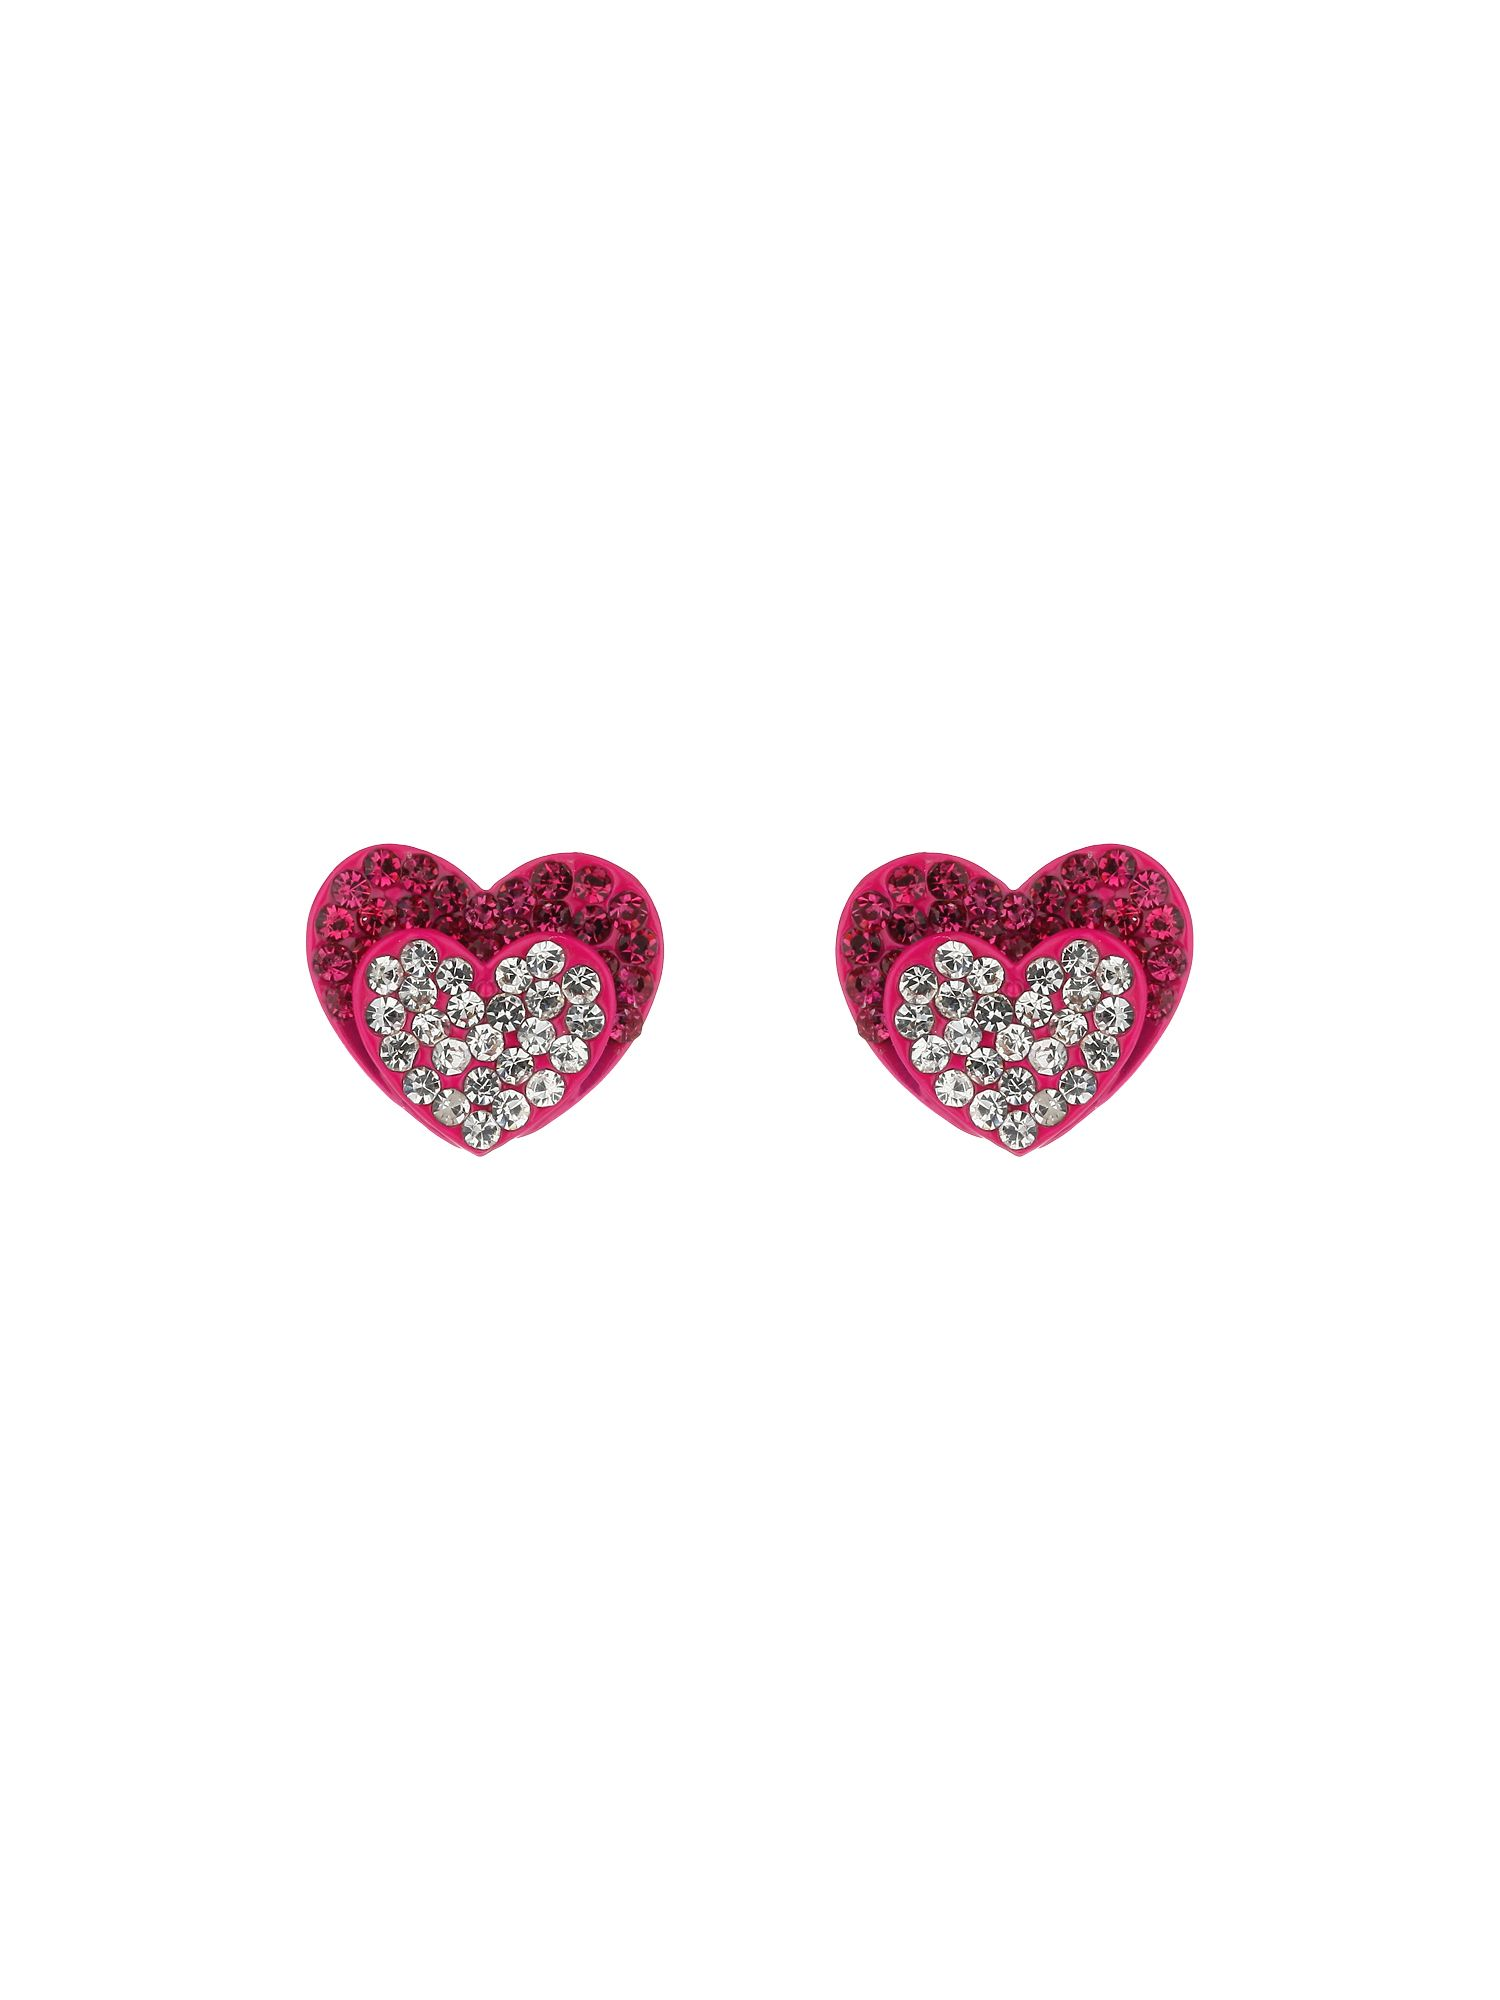 Double heart earrings